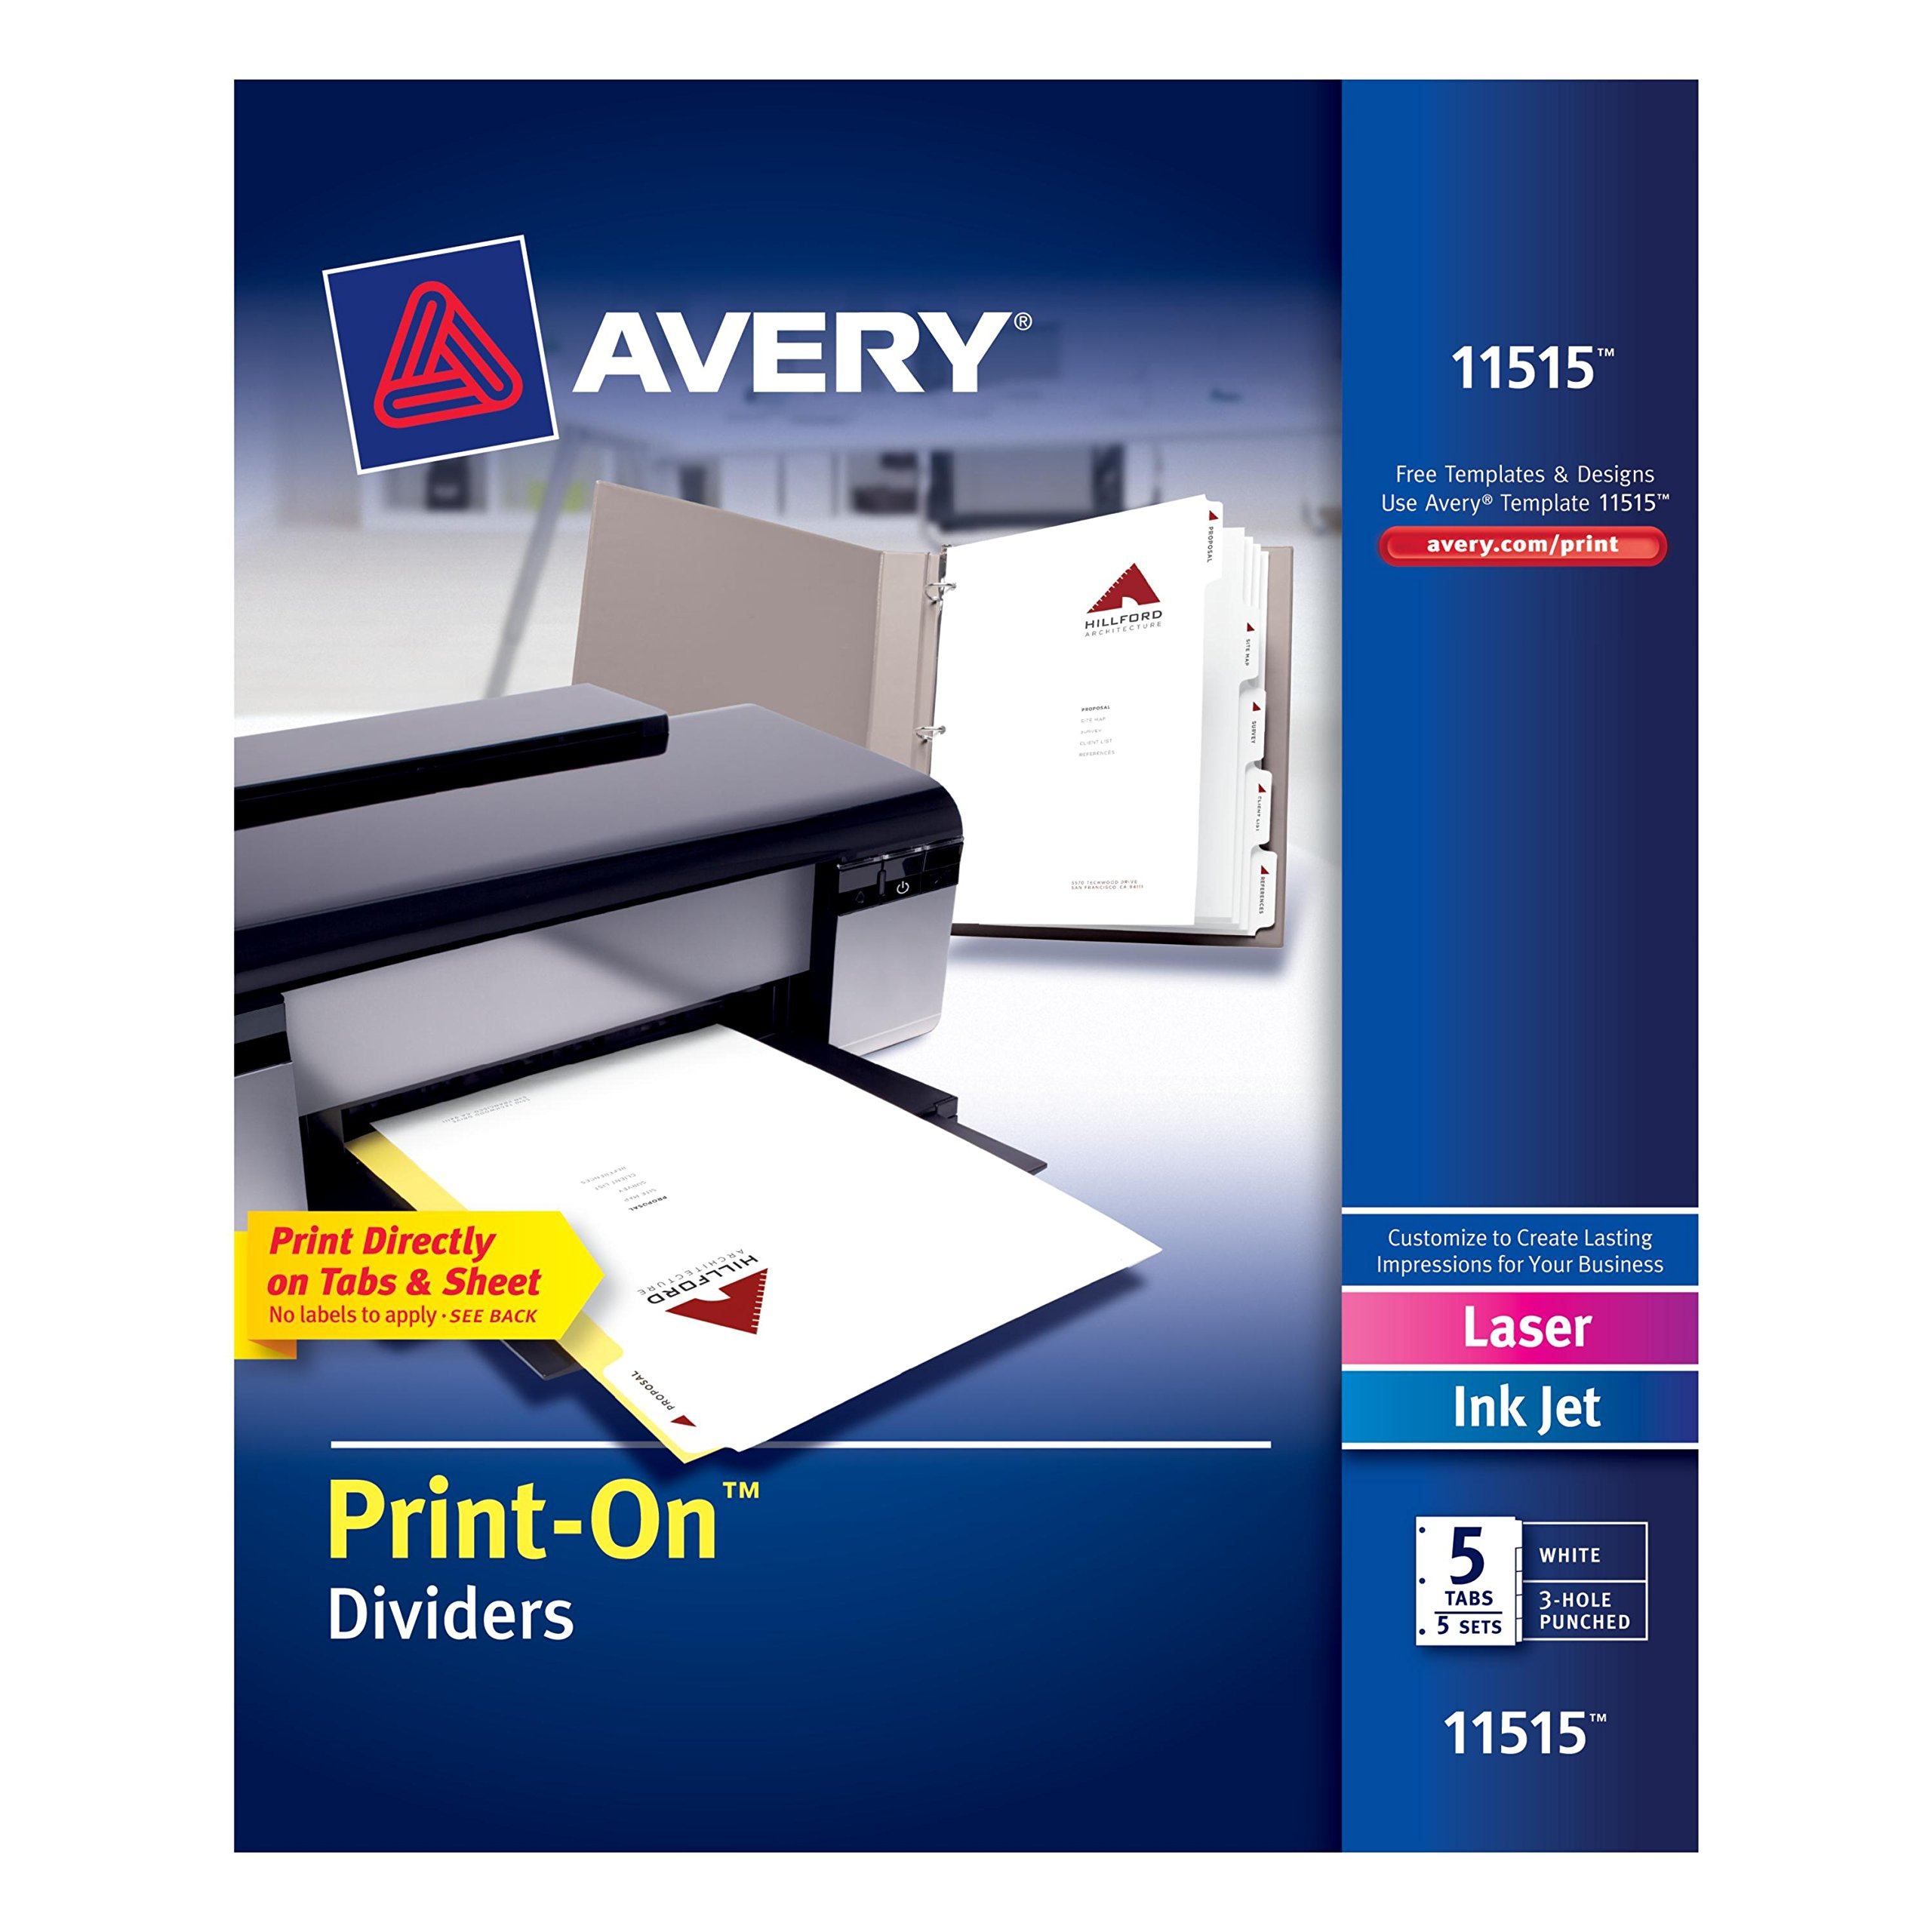 Avery Print-On Dividers, White, 5 Tabs, 5 Sets (11515) by AVERY